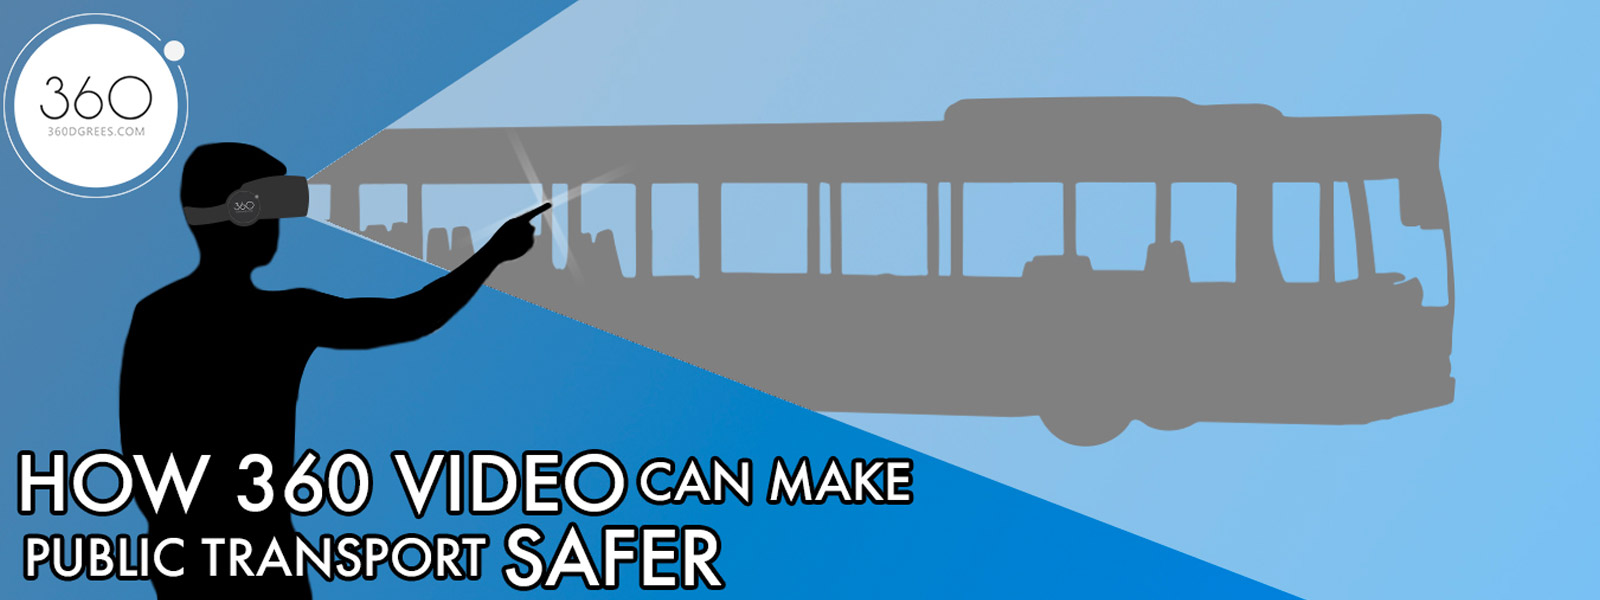 How 360 video can make public transport safer?